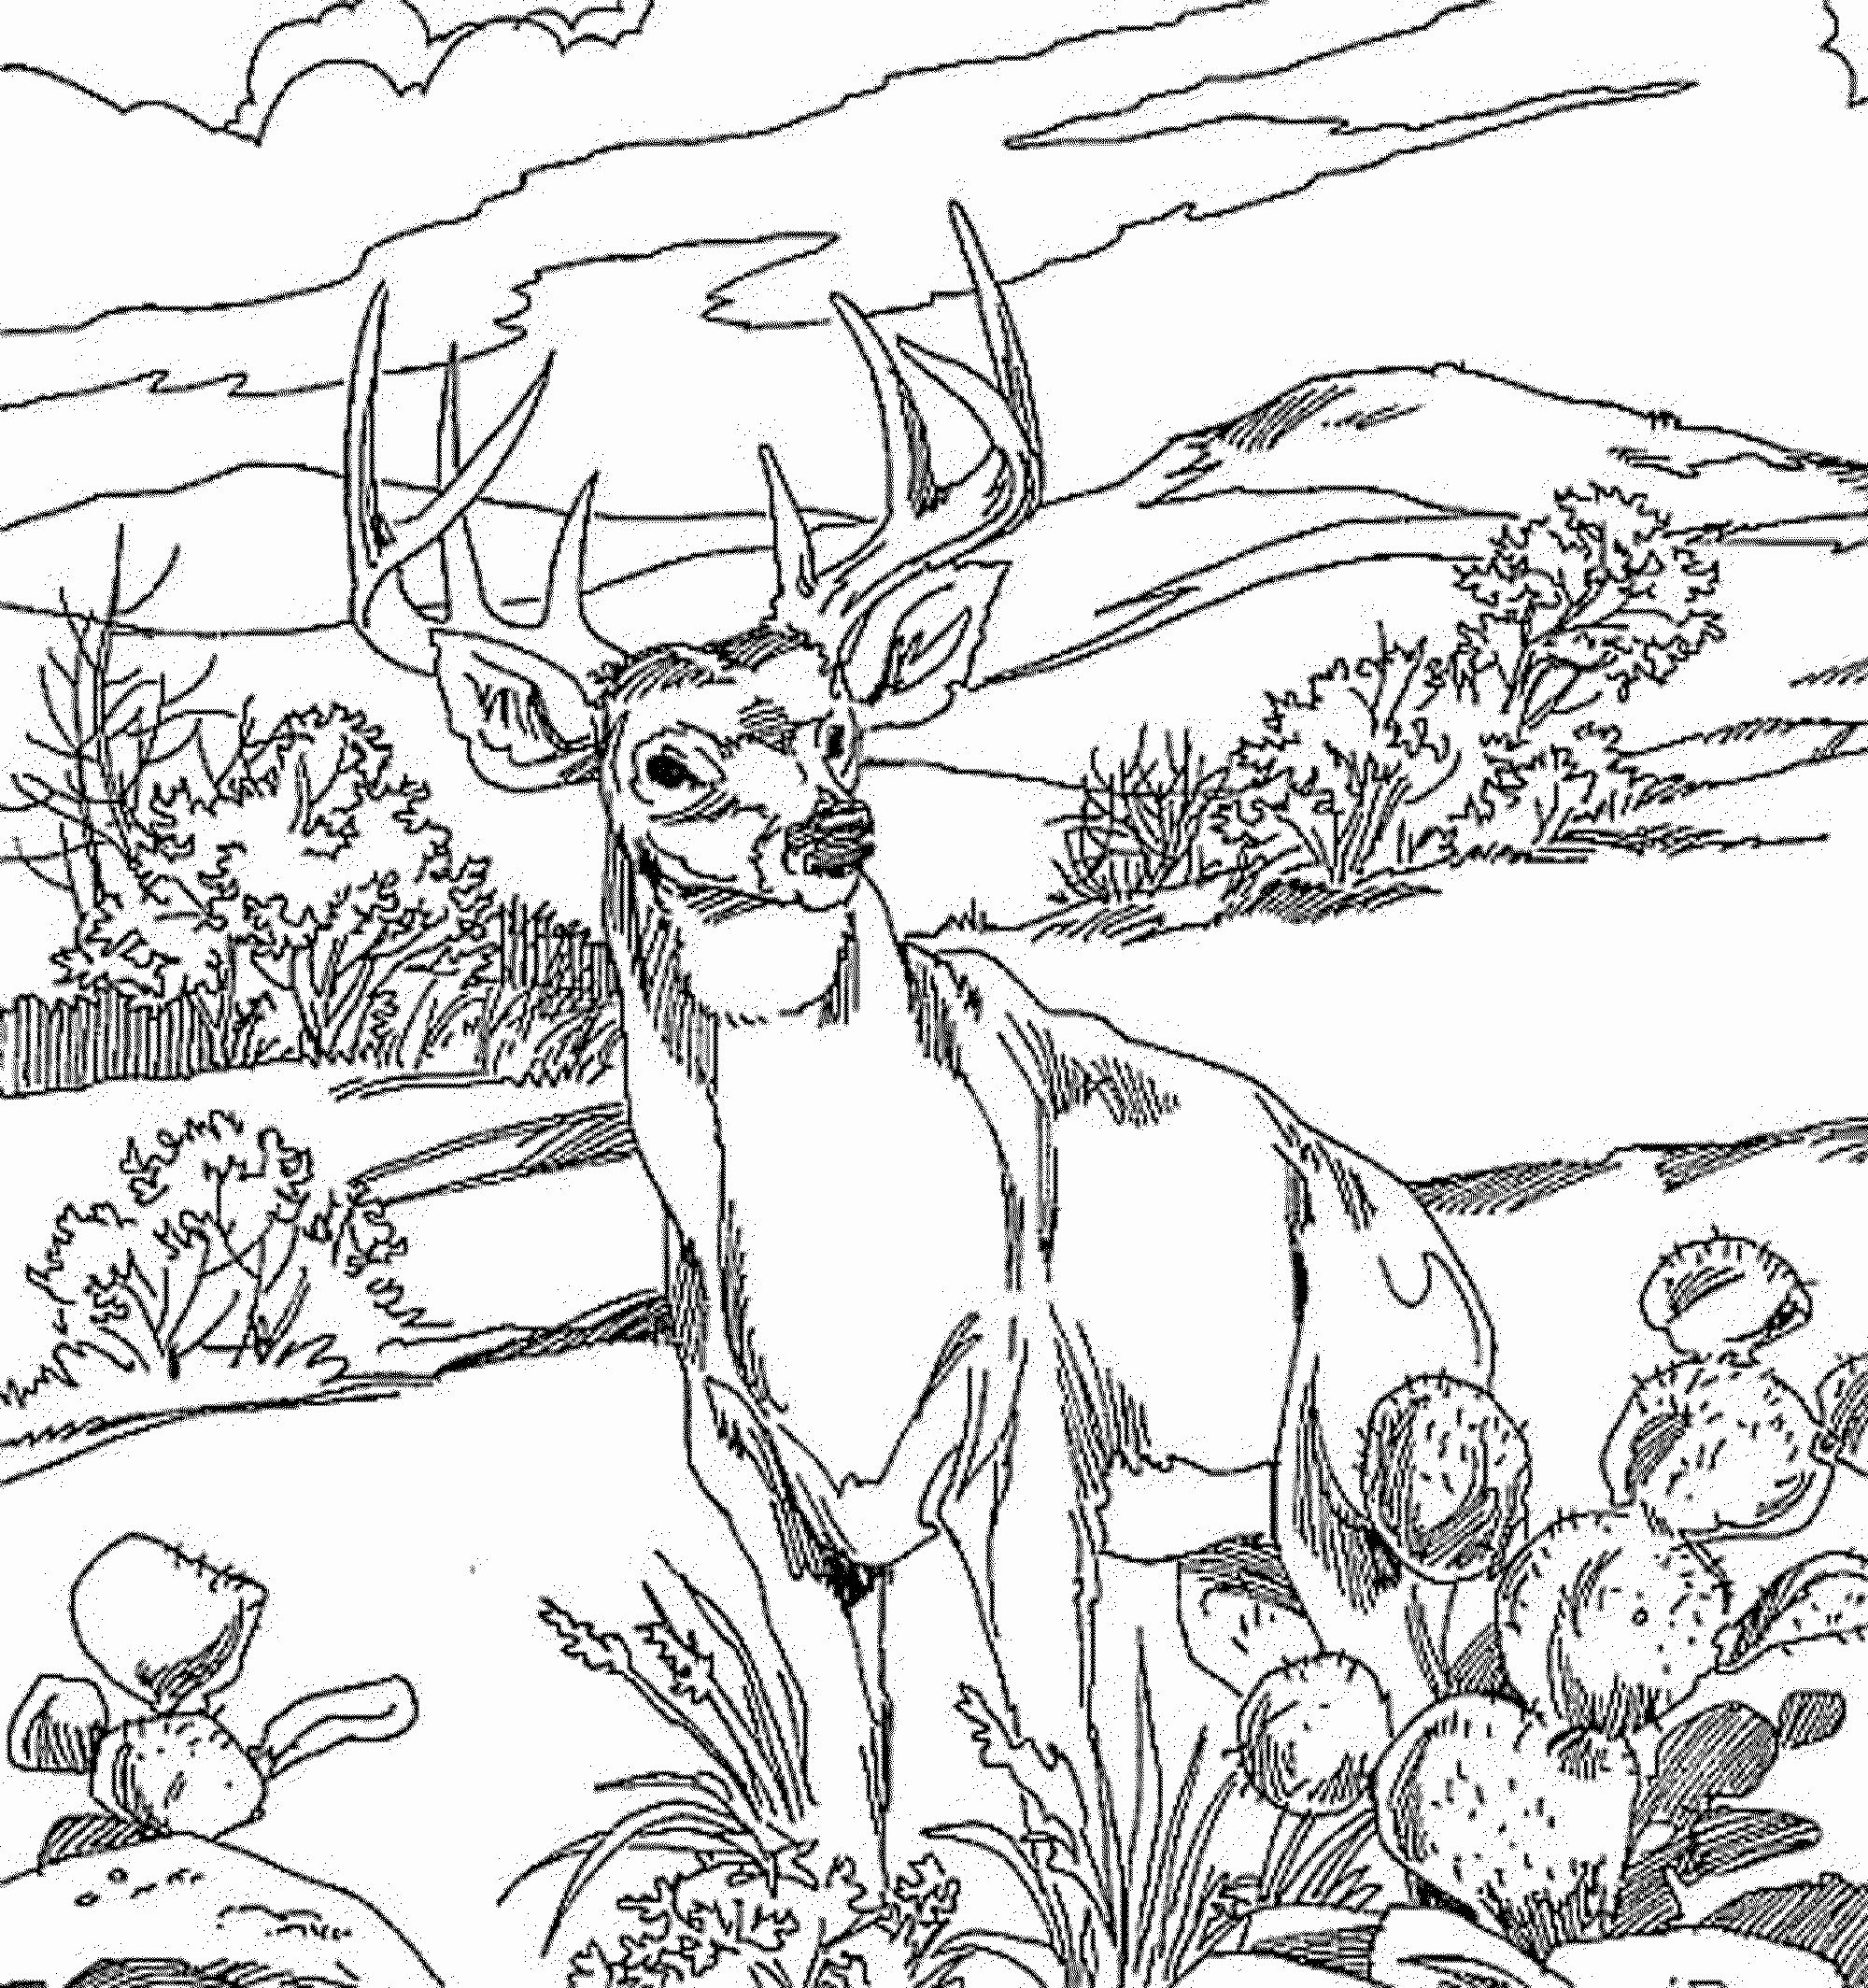 Wildlife Coloring Books Luxury Animal Coloring Pages For Adults Bestofcoloring Deer Coloring Pages Animal Coloring Books Dog Coloring Page [ 2128 x 2000 Pixel ]